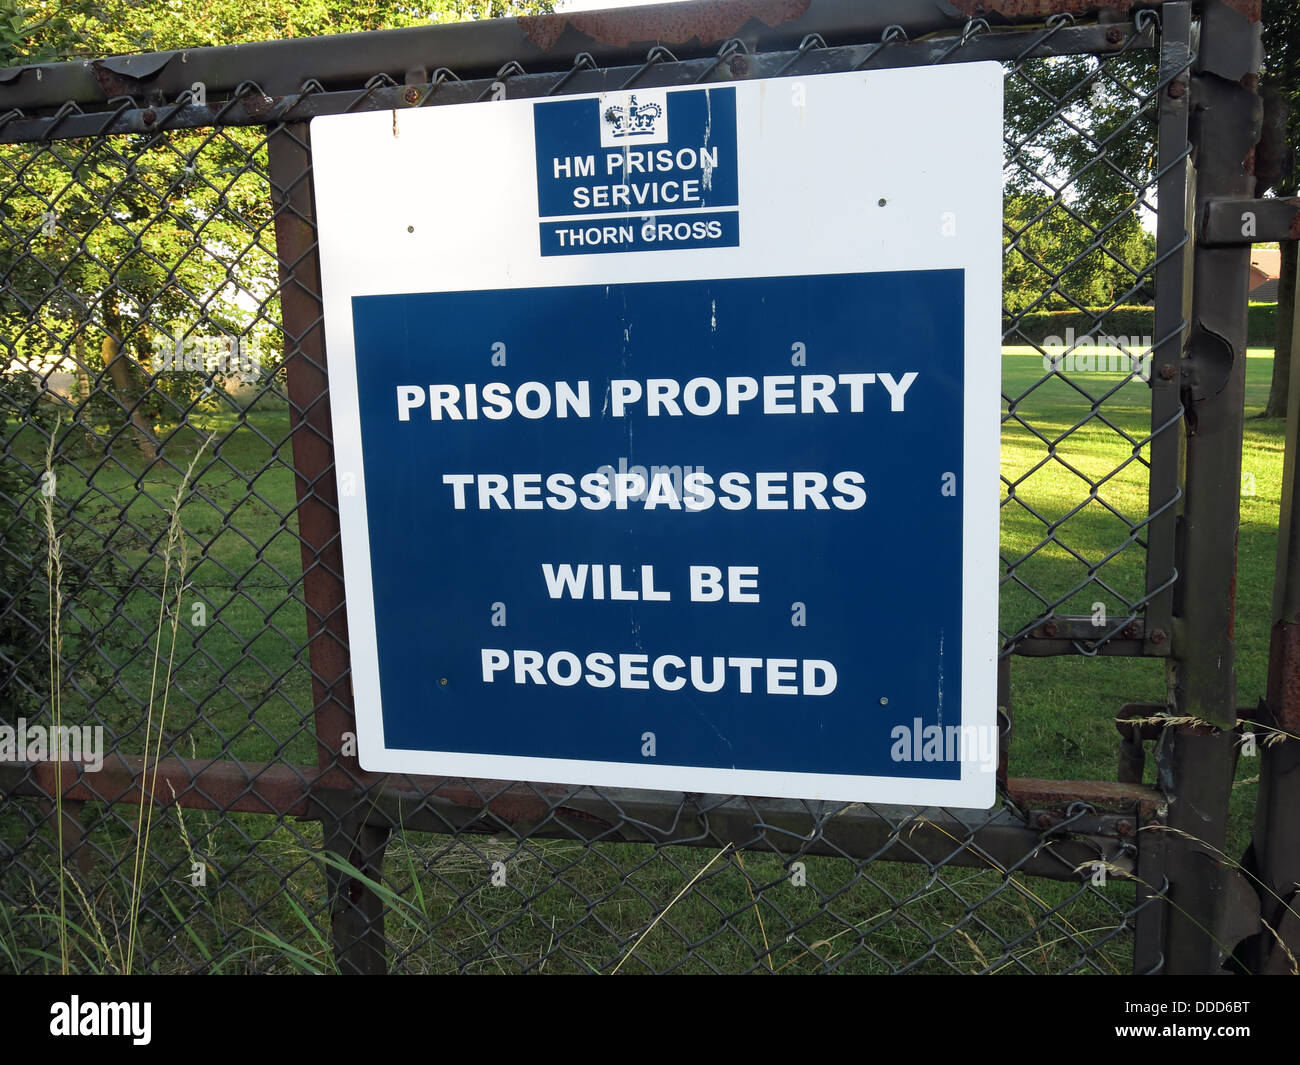 sign,offenders,service,Cheshire,Warrington,Appleton,Thorn,Cross,Property,Trespassers,will,be,prosecuted,land,fence,on,a,escape,attempt,attempted,NW,north,west,England,English,Wales,&,and,welsh,GB,Great,Britain,British,UK,United,Kingdom,legal,system,gotonysmith,Buy Pictures of,Buy Images Of